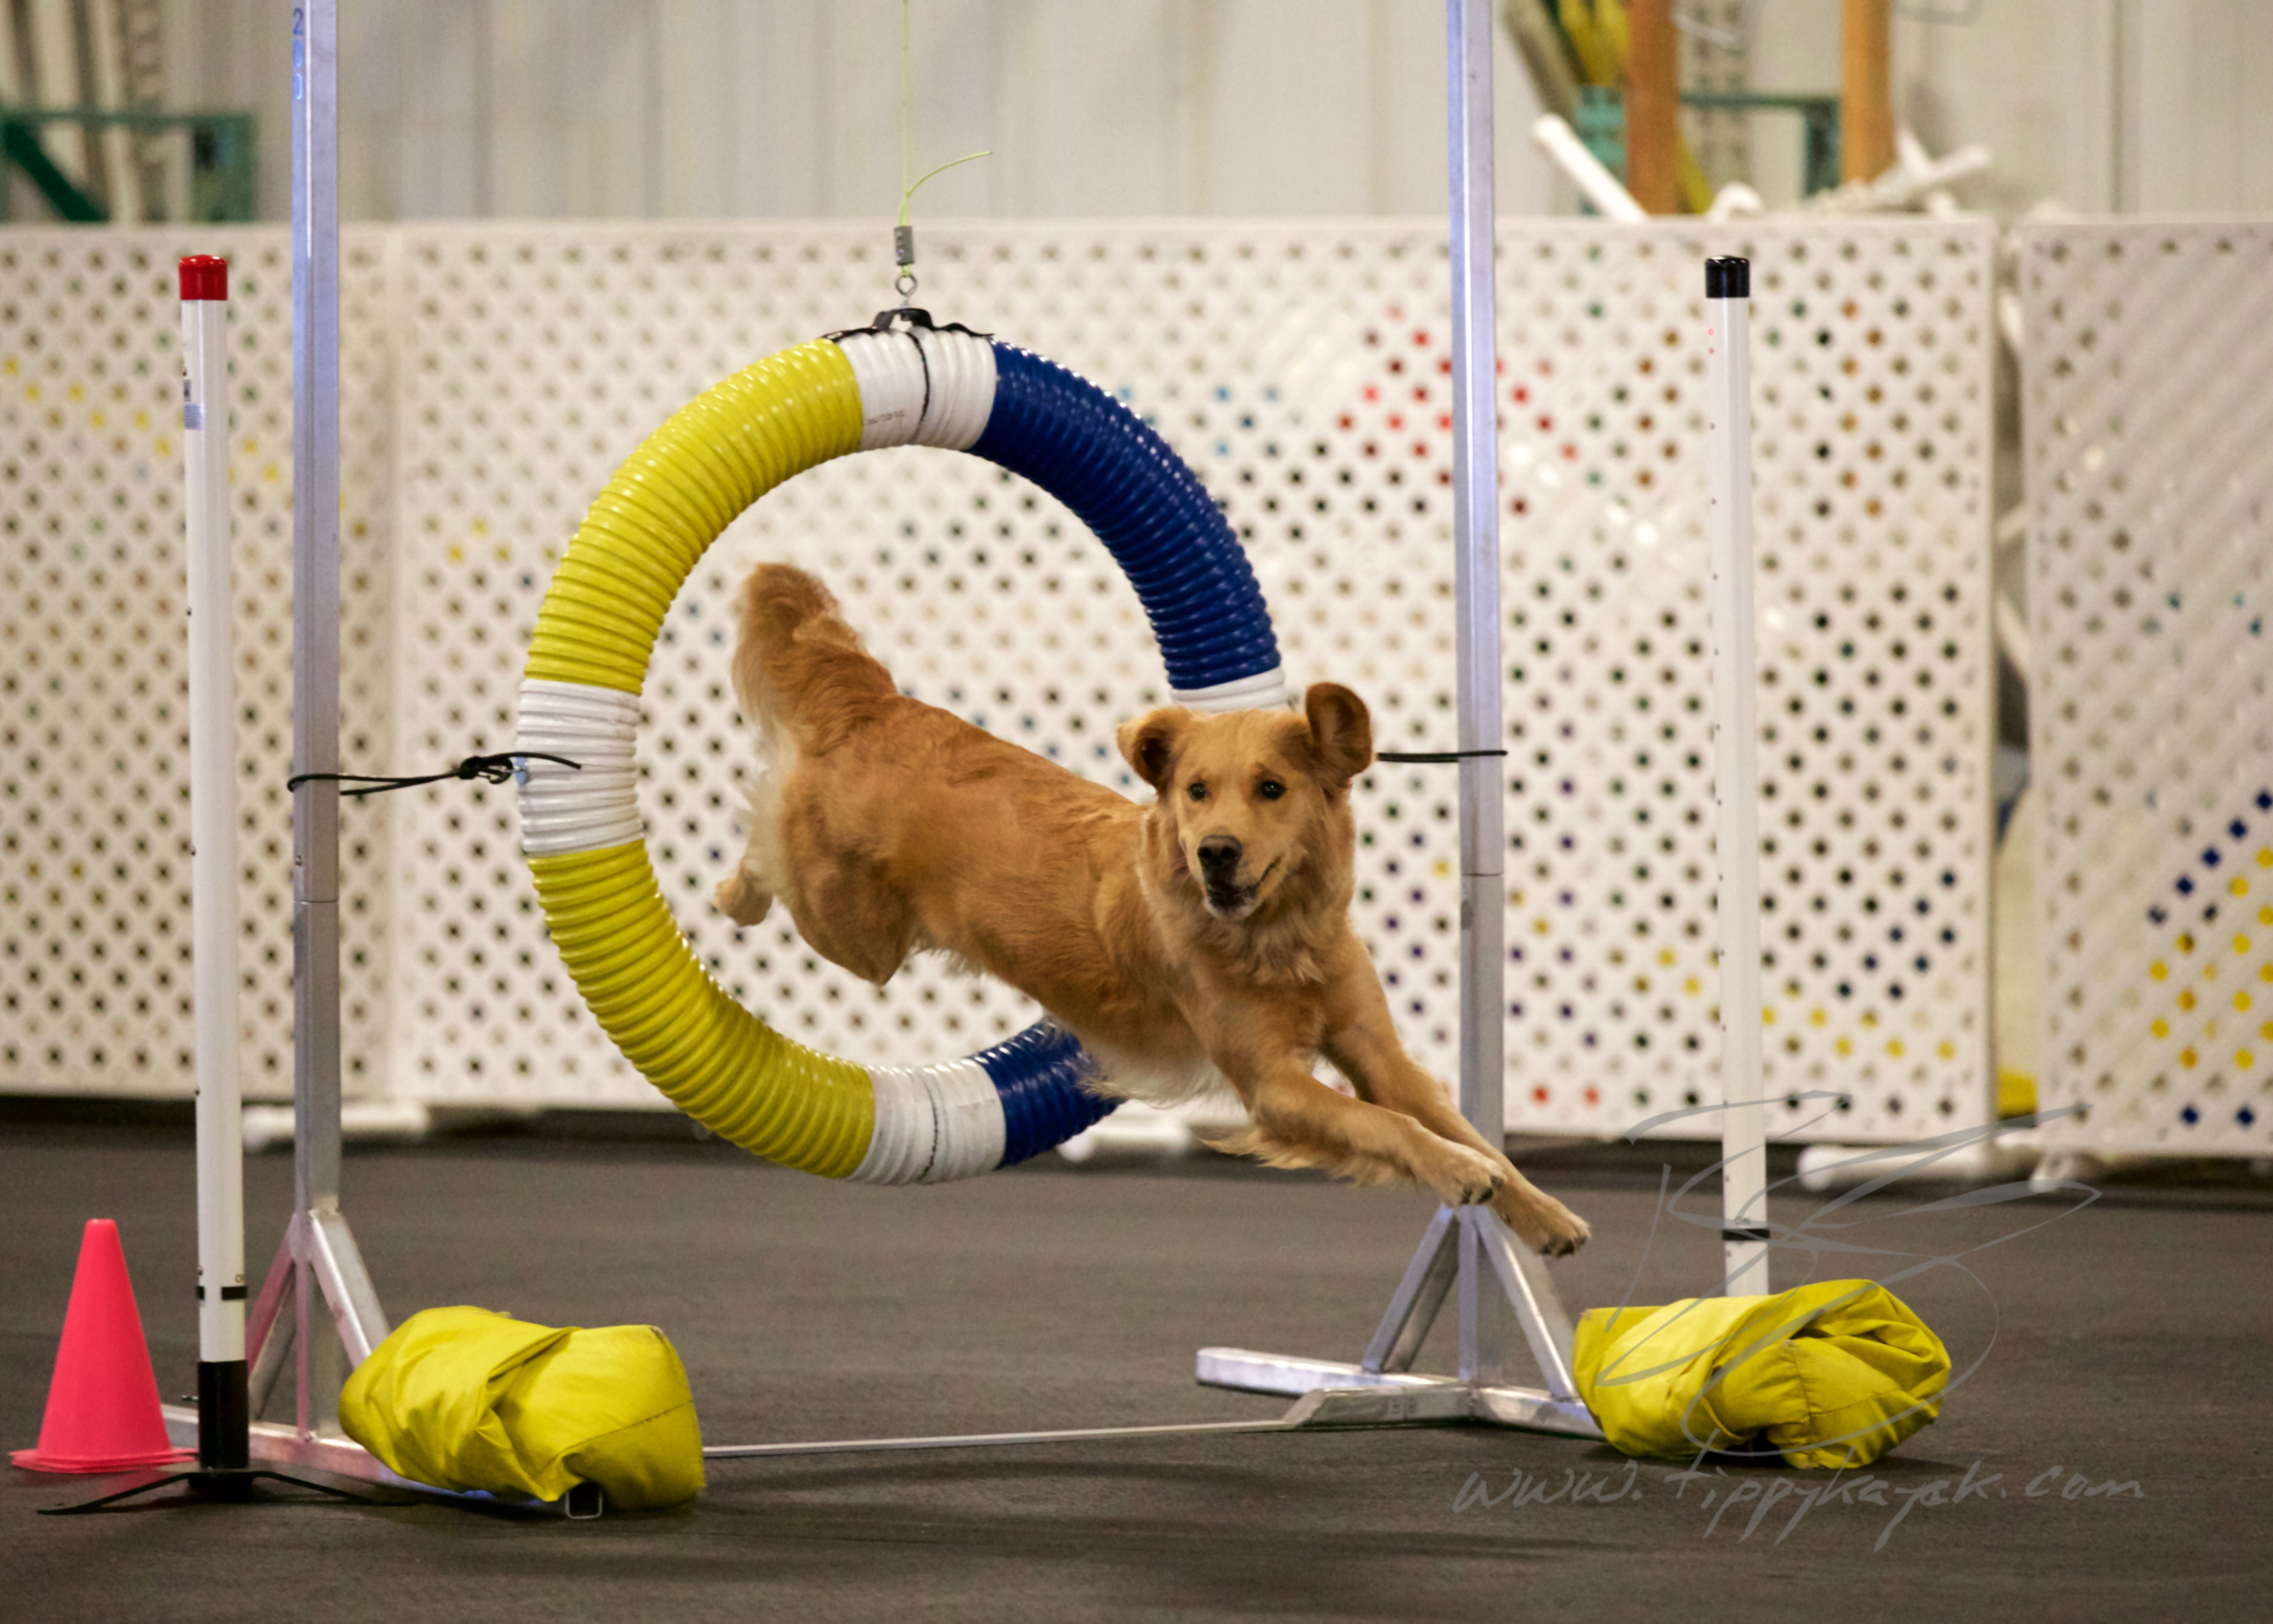 Lots of agility competitors use differential reinforcement to get faster, more precise behavior in competition.